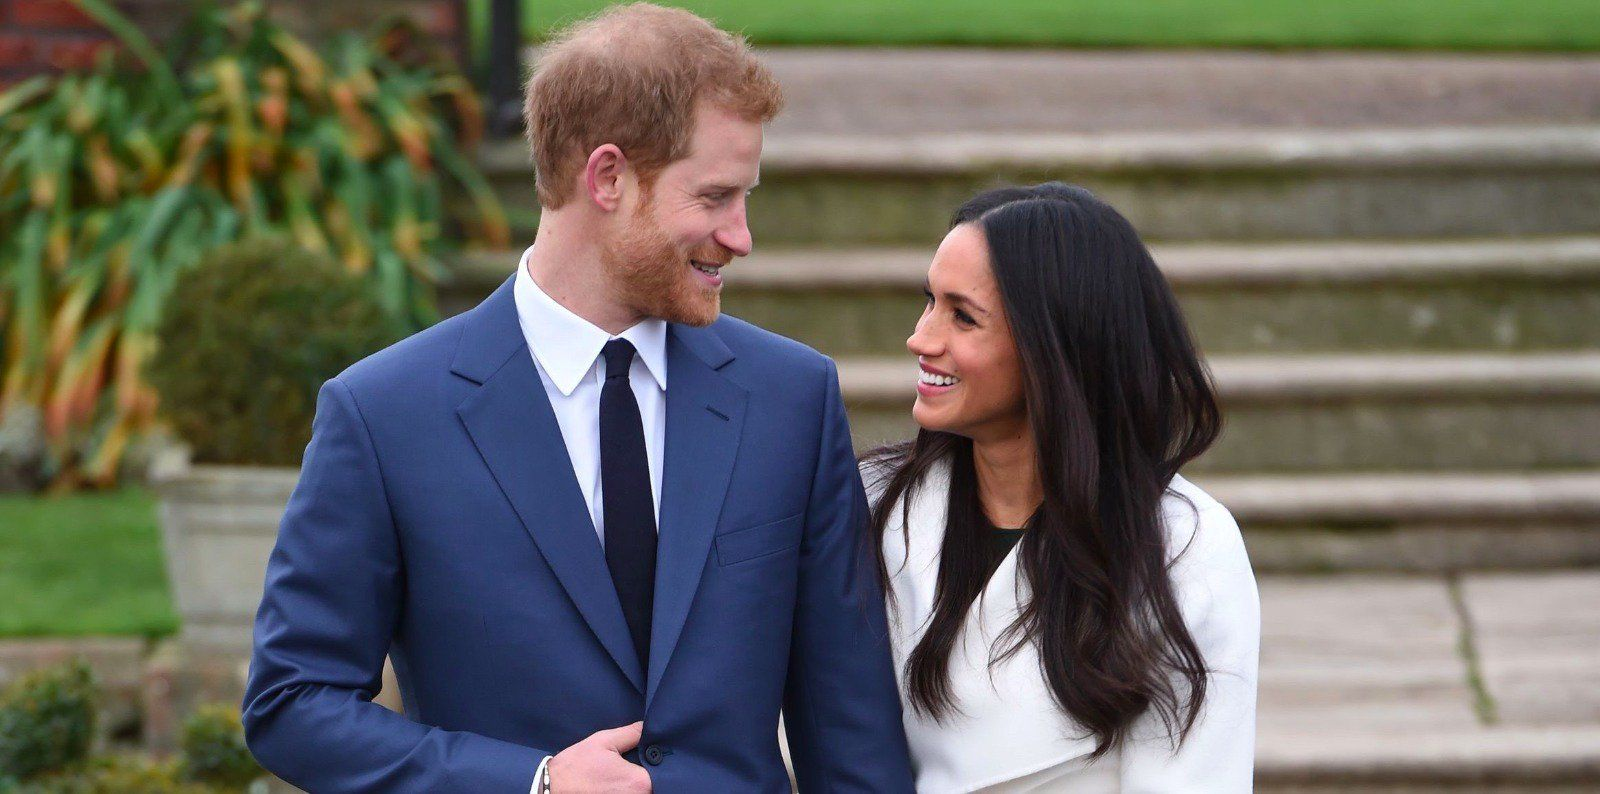 10 Things To Know About The Upcoming Royal Wedding